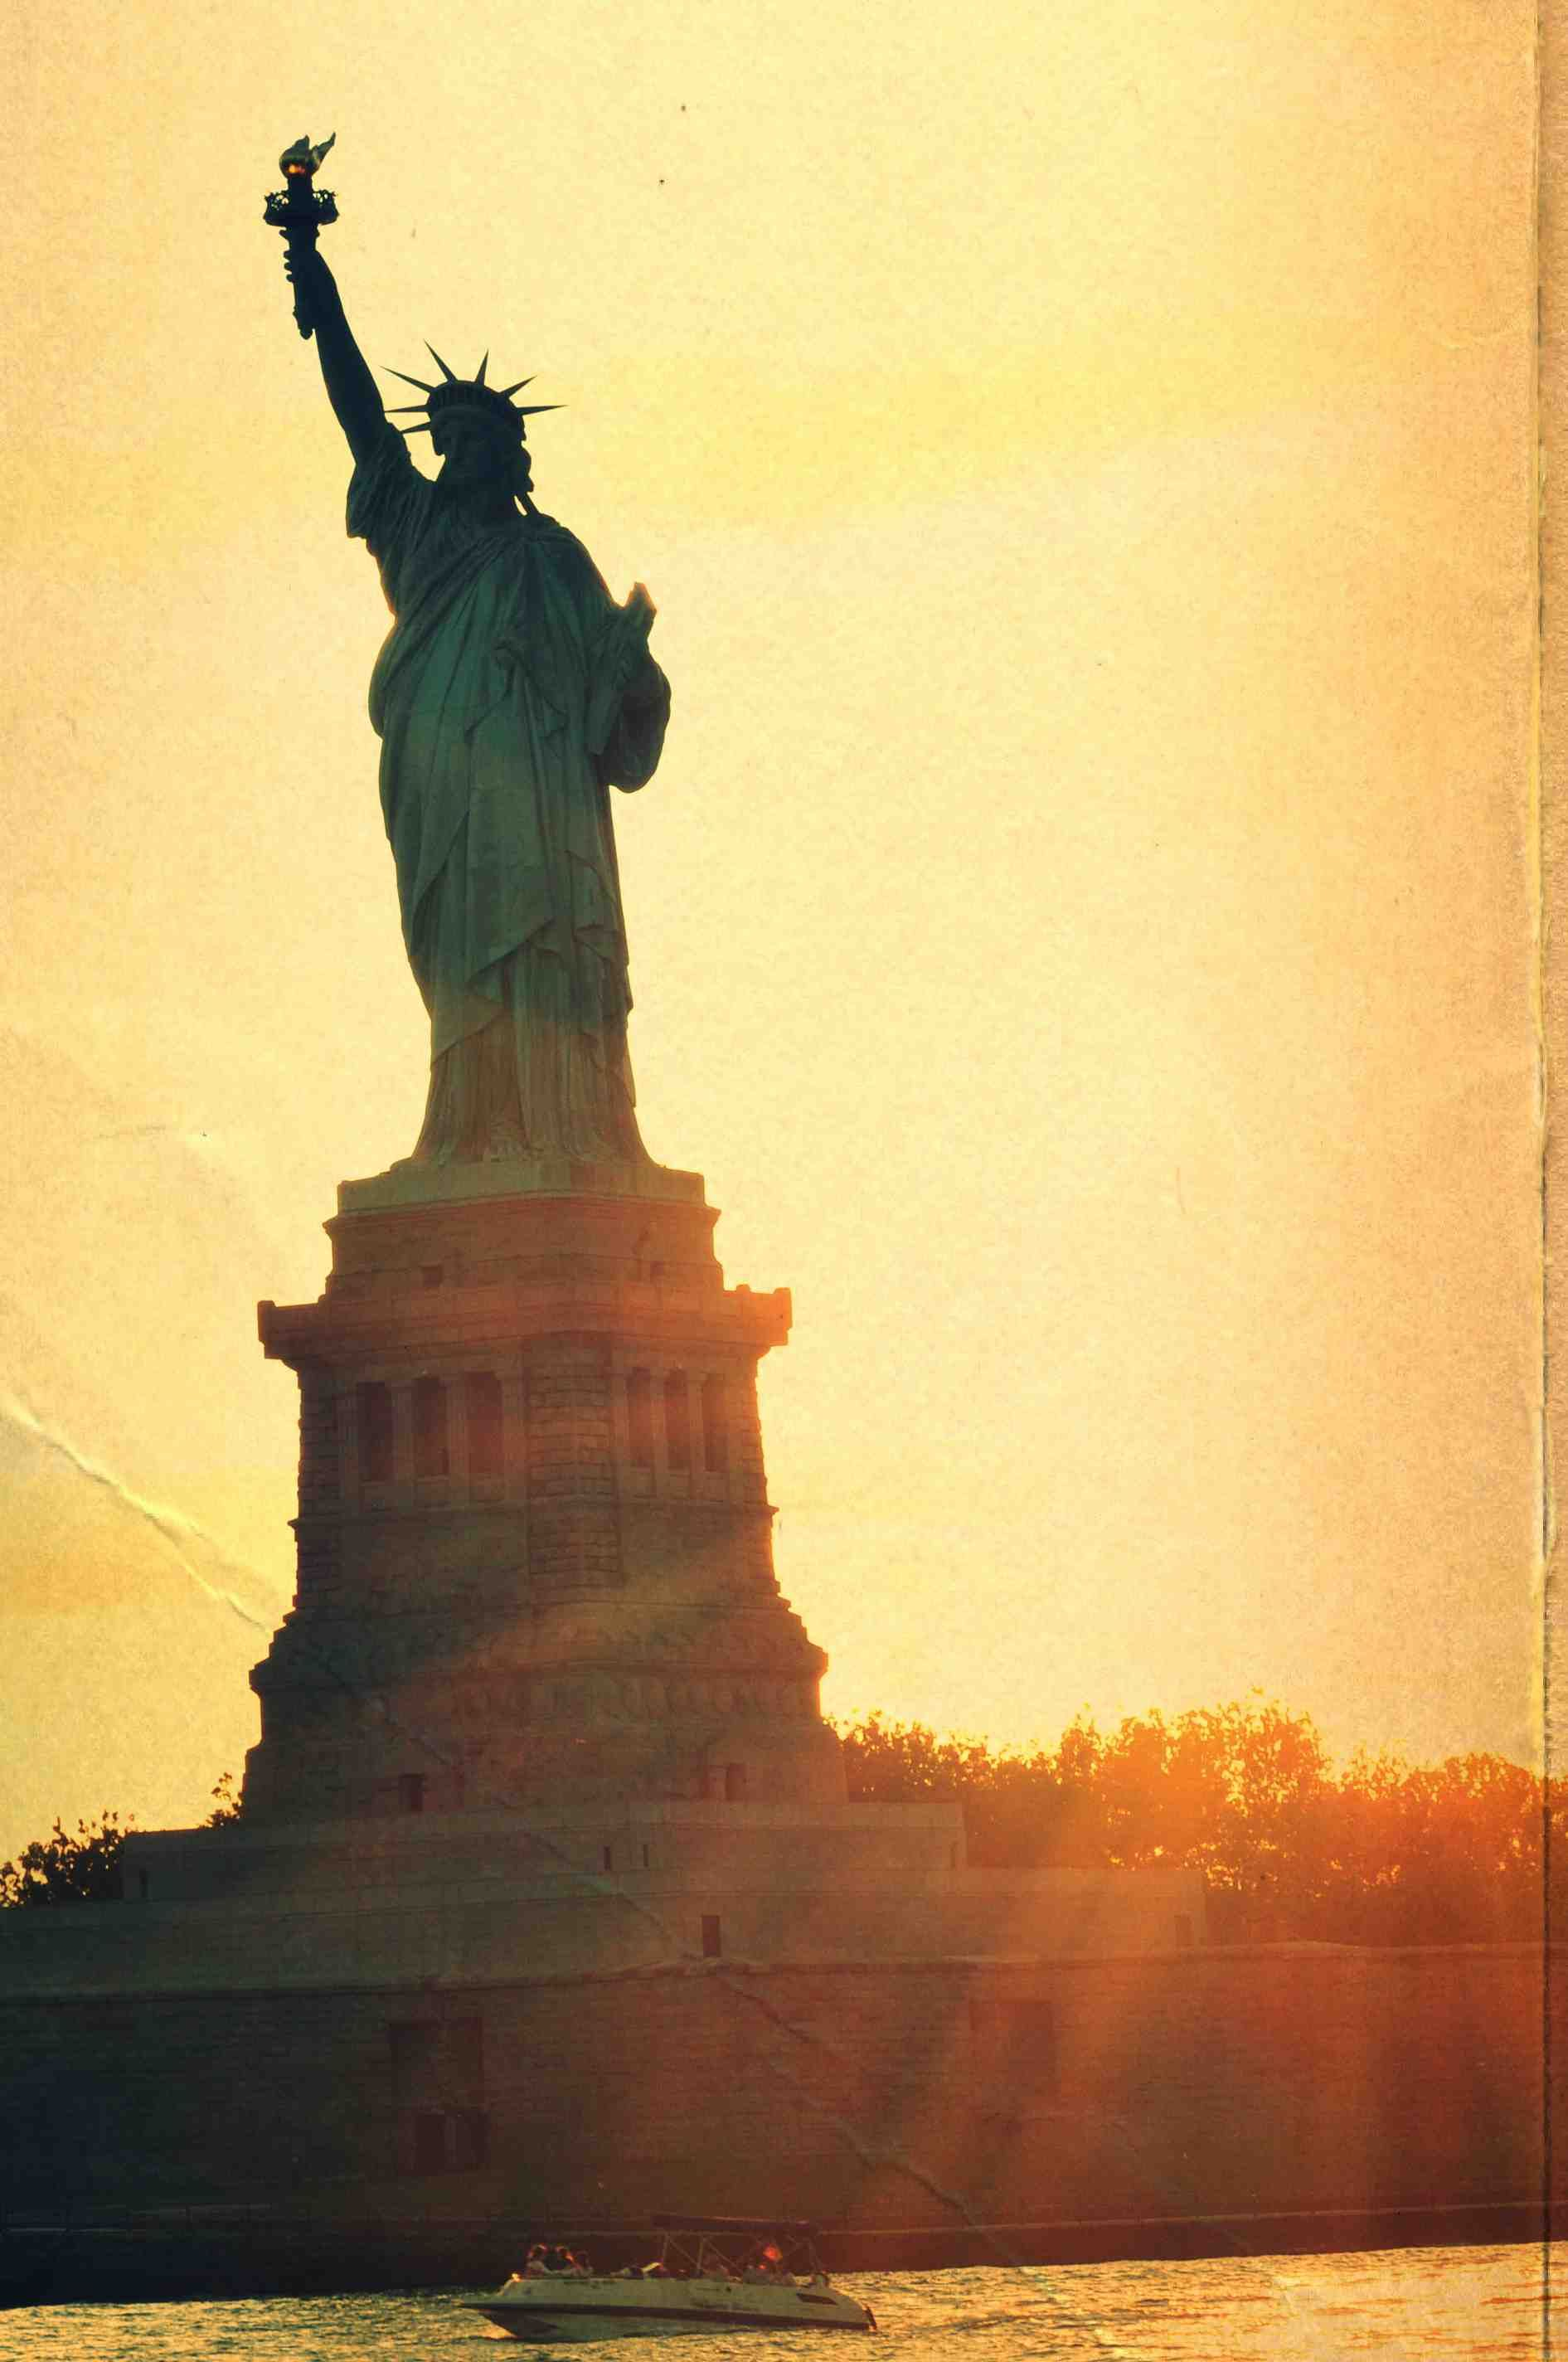 Lady Liberty by Stephanie Fenton